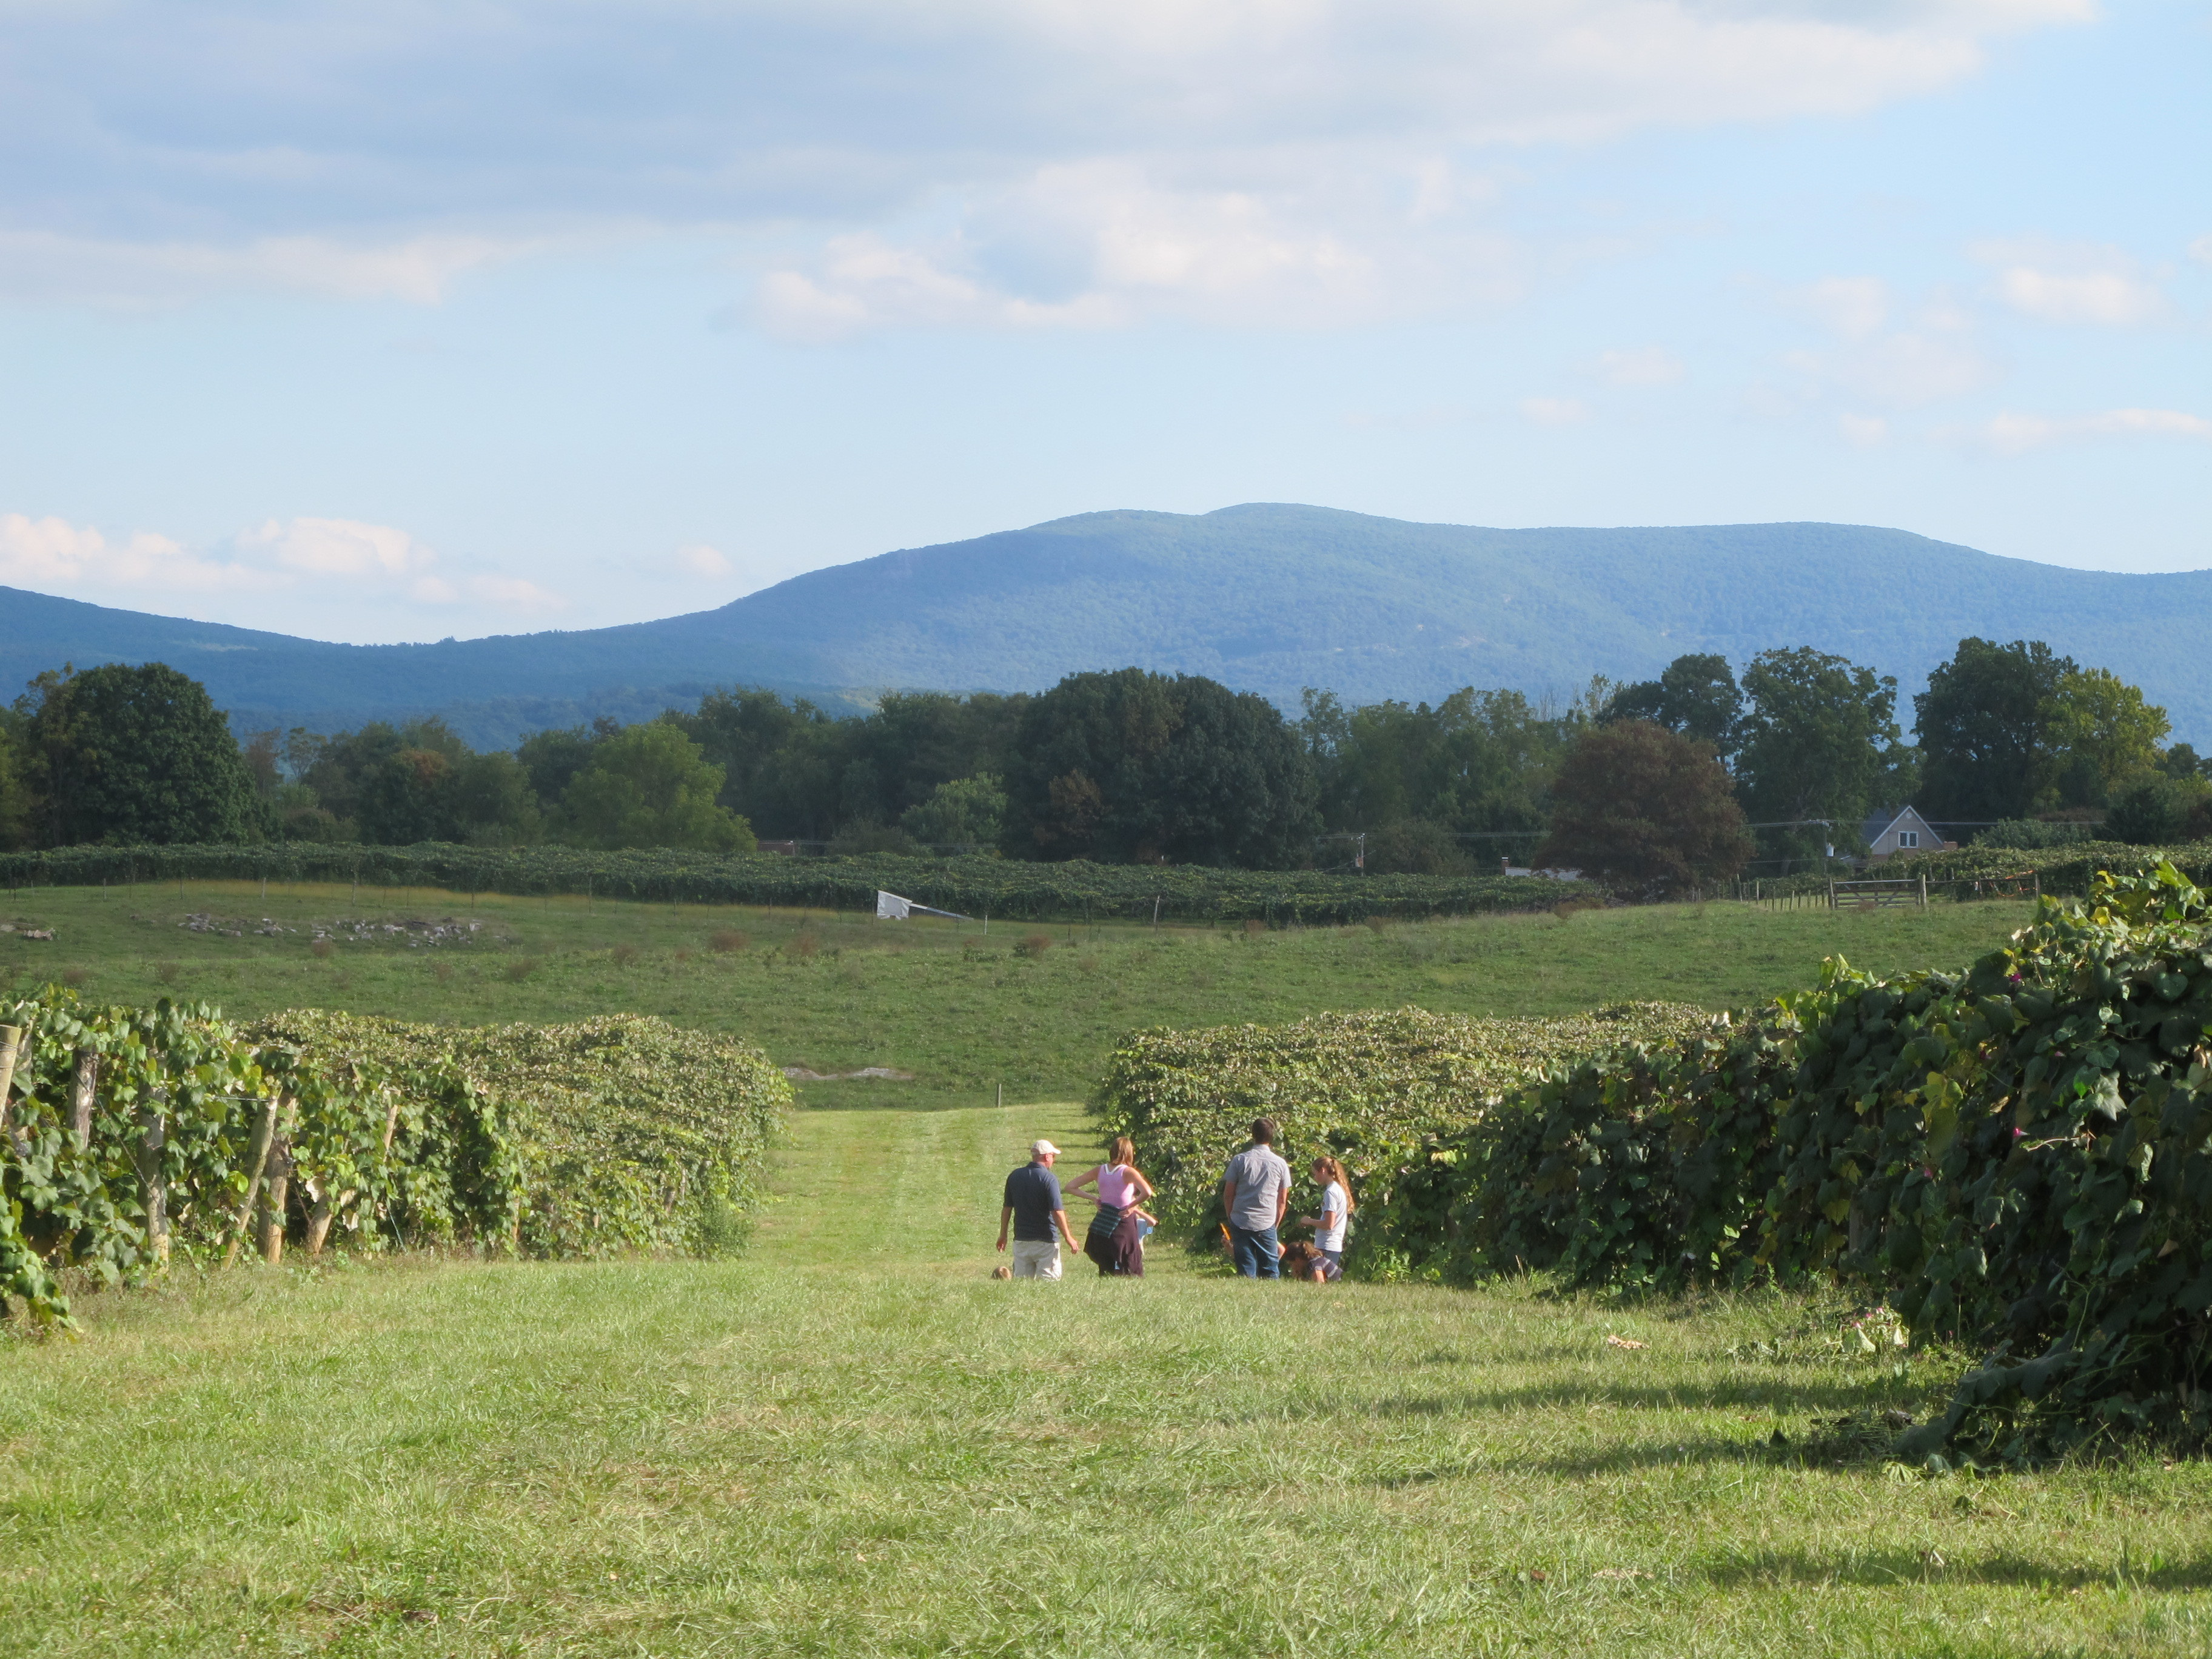 Enjoying the afternoon sun and views of the Blue Ridge Mts from Wenger Grapes. Family activities. Vineyard